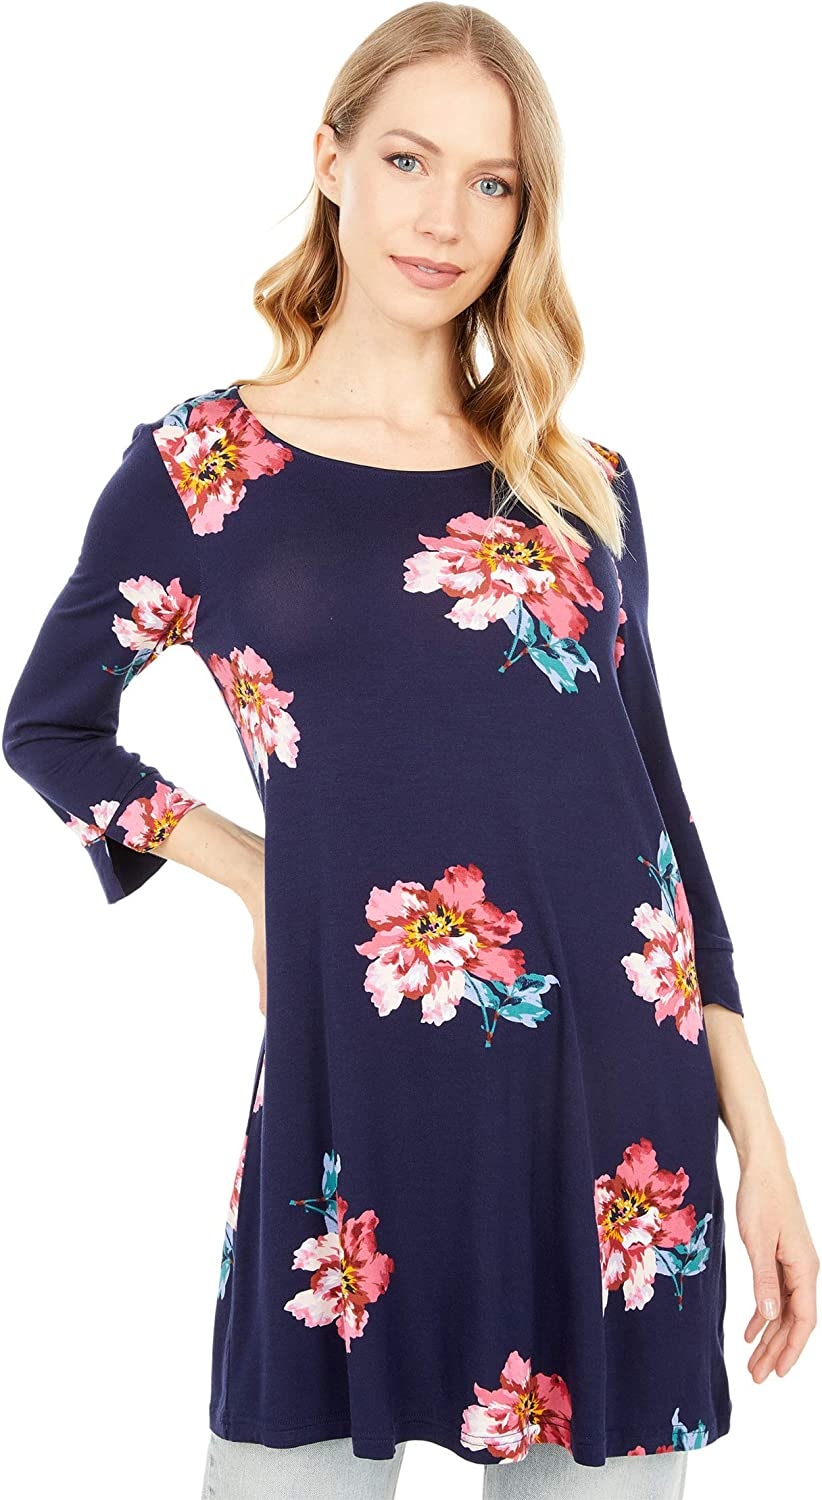 Joules Round Neck Jersey Tunic